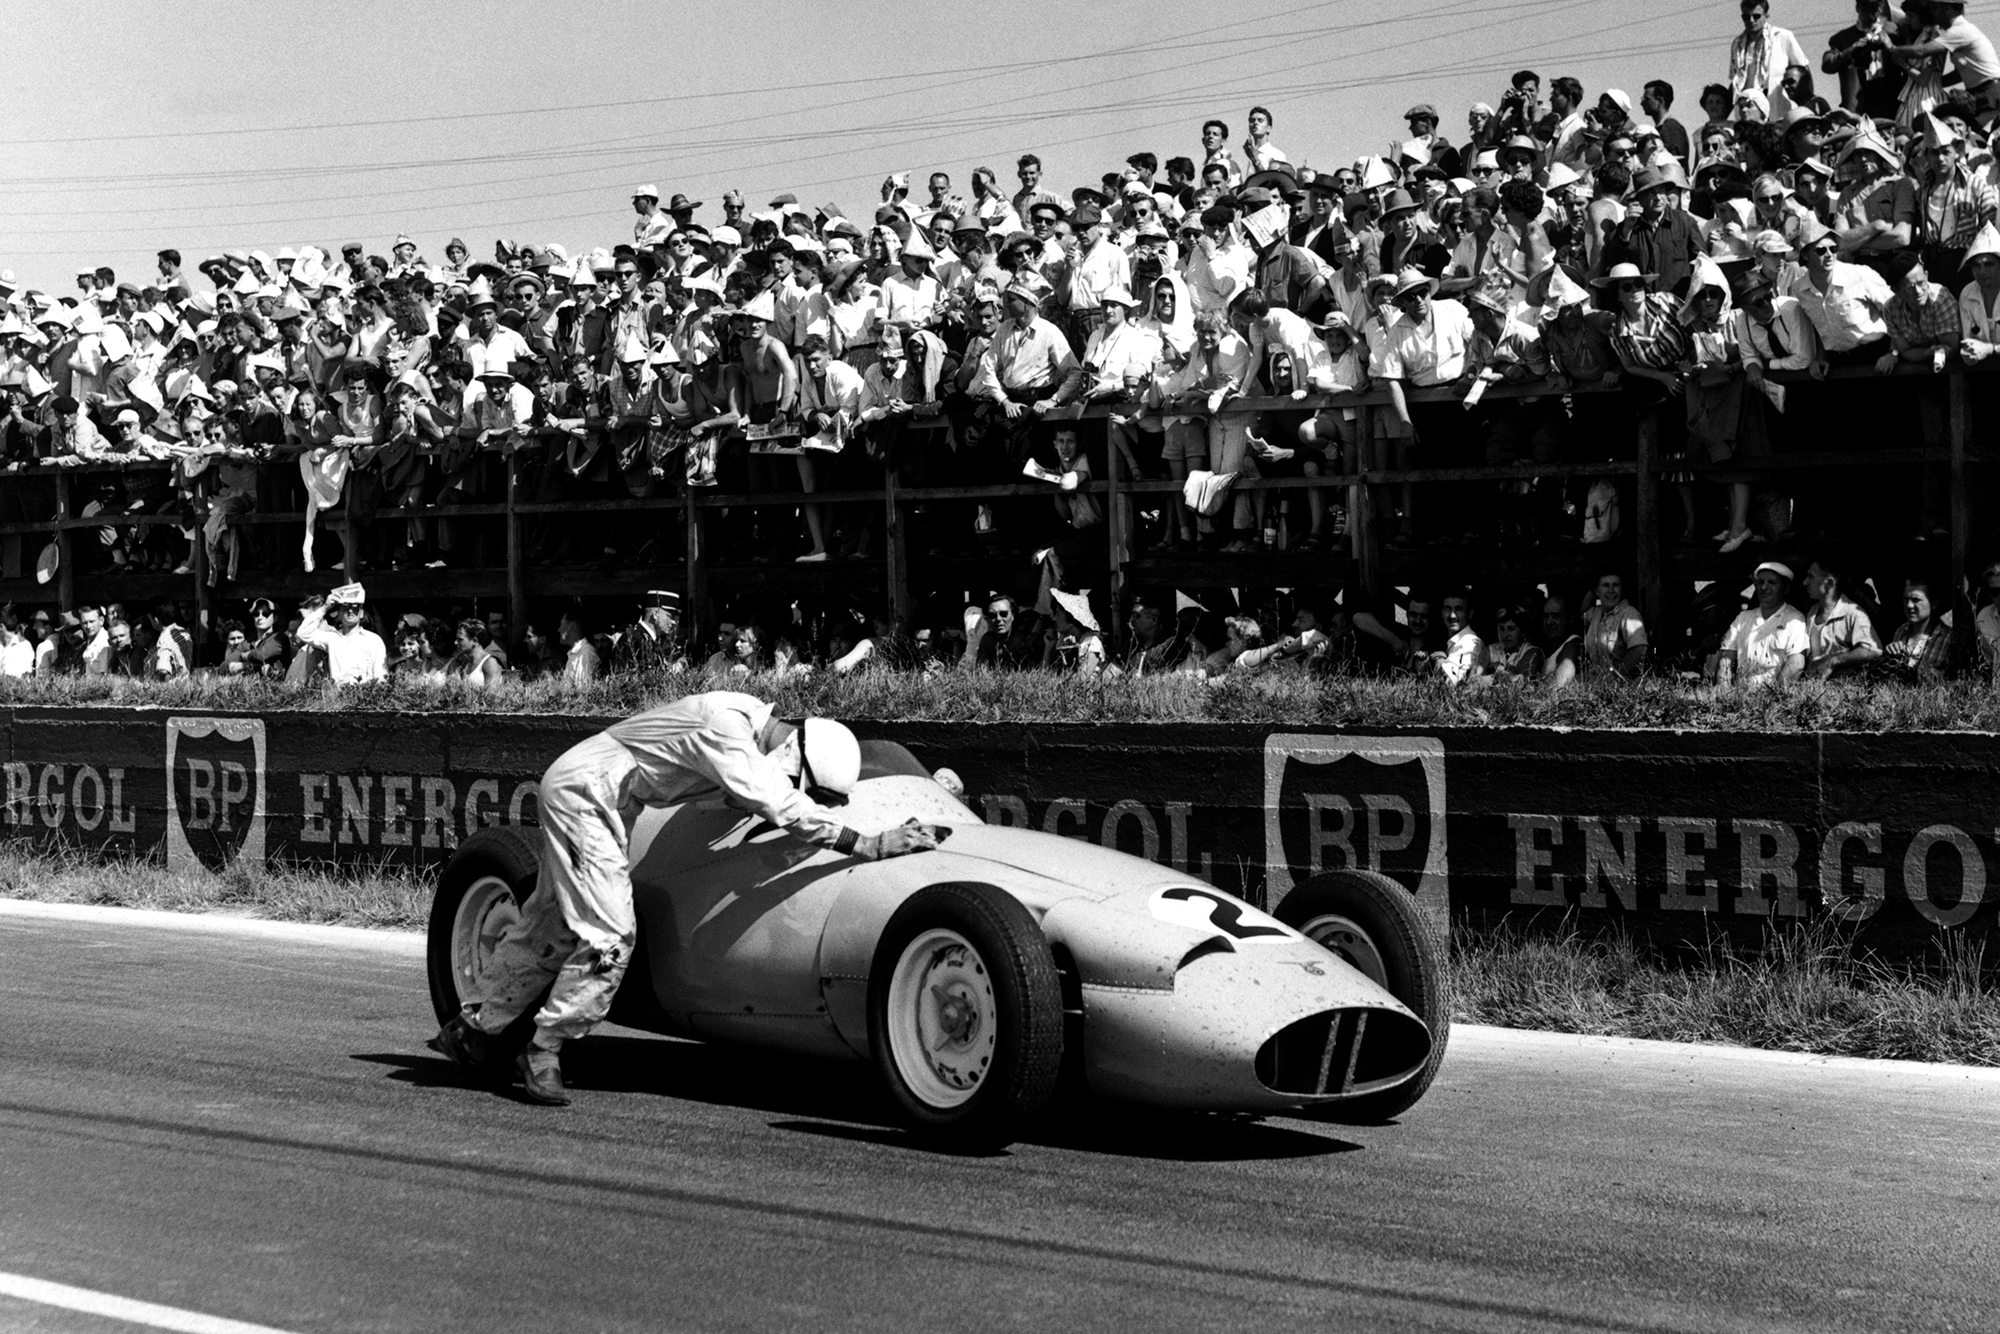 Stirling Moss pushes his BRM P25 , but is later disqualified for receiving outside assistance.